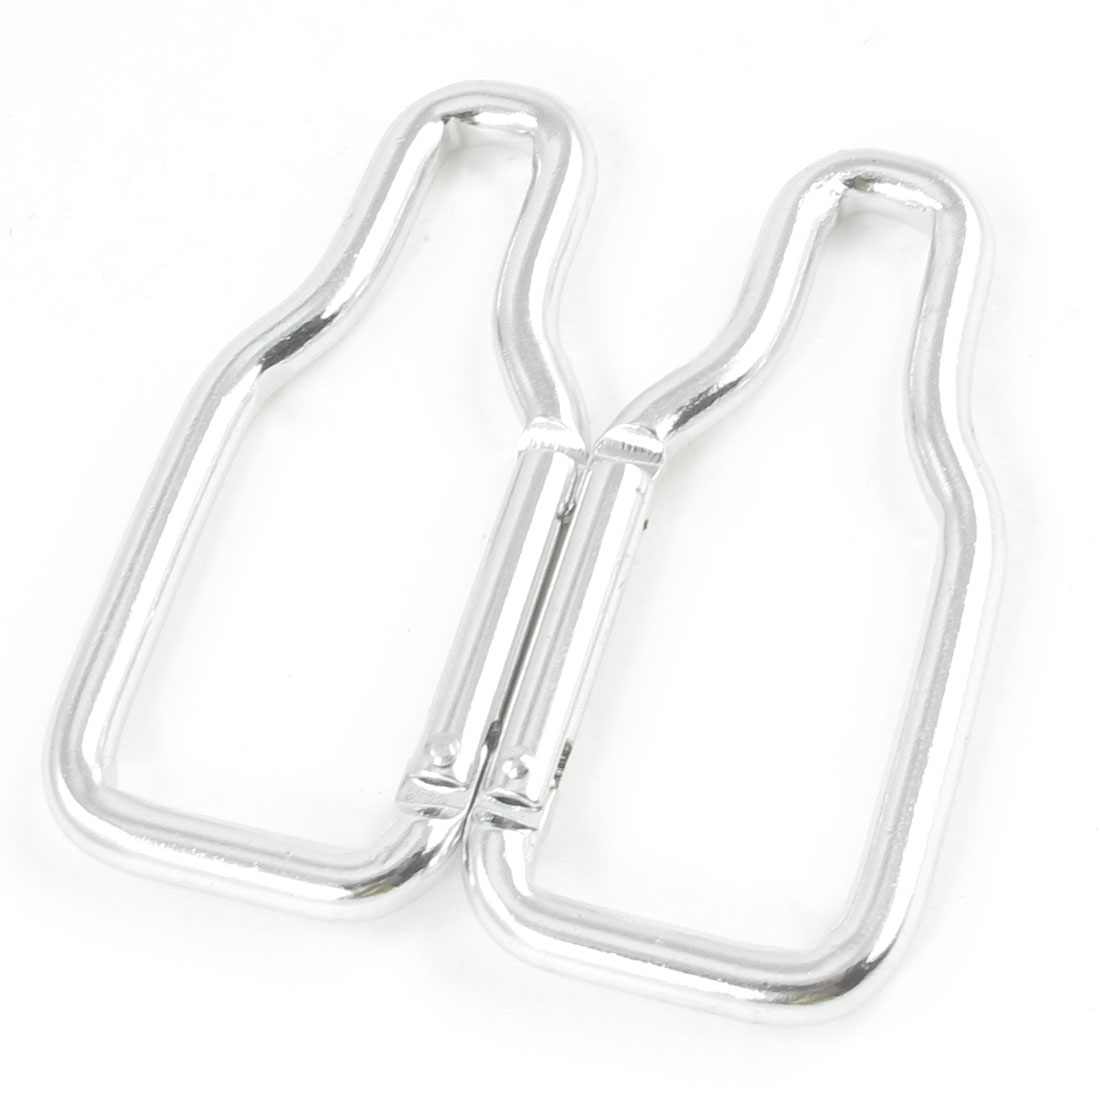 2 Pcs Silver Tone Bag Bottle Holder Aluminum Alloy Snap Clip Carabiner Hooks